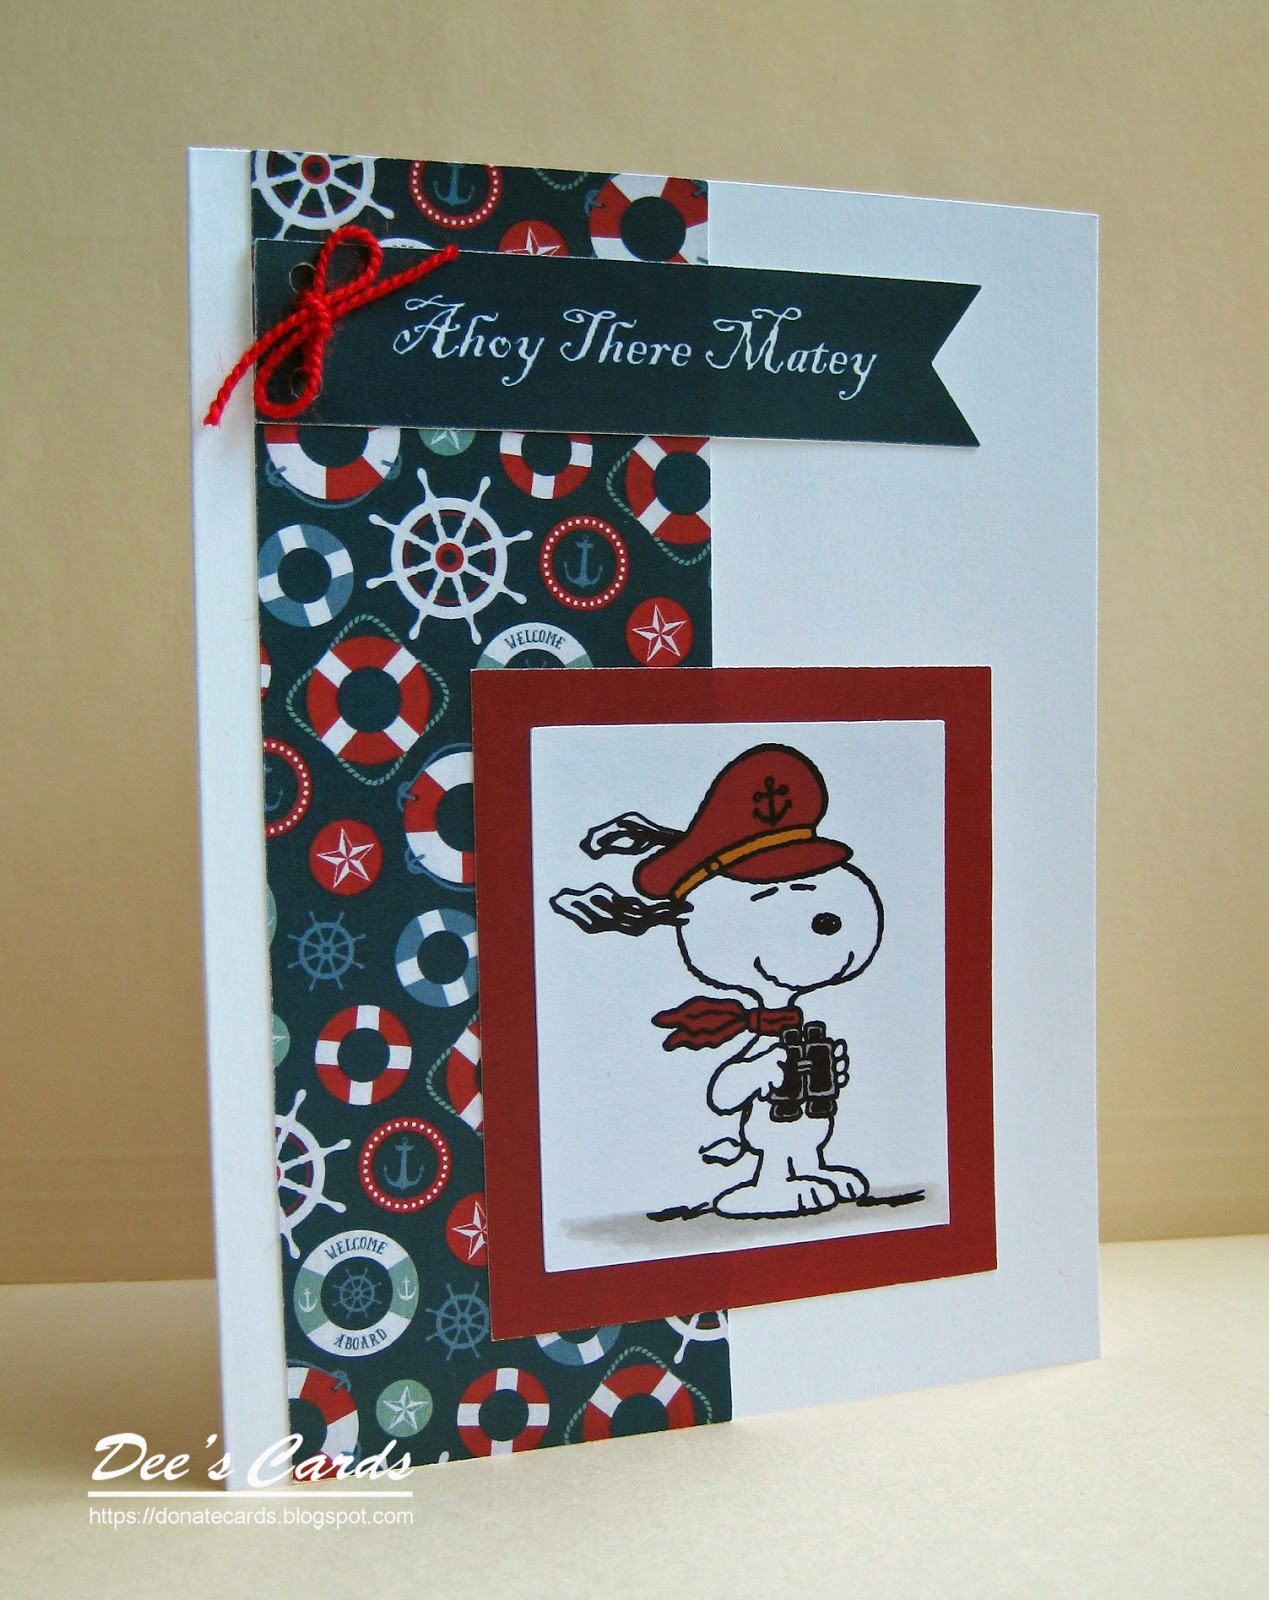 Dees Cards Nautical Snoopy Card